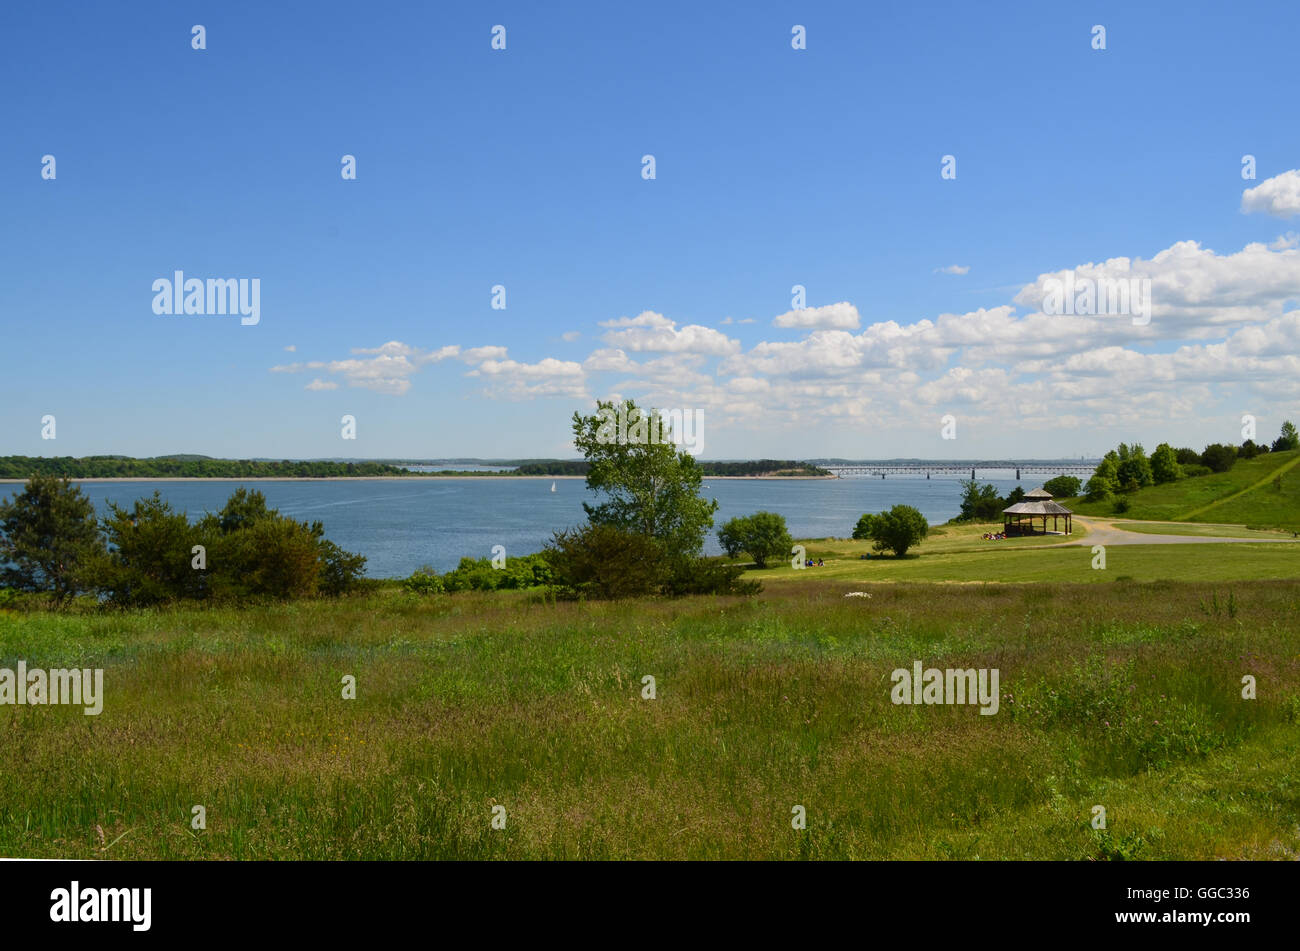 Lush green Spectacle Island in Boston Harbor. - Stock Image